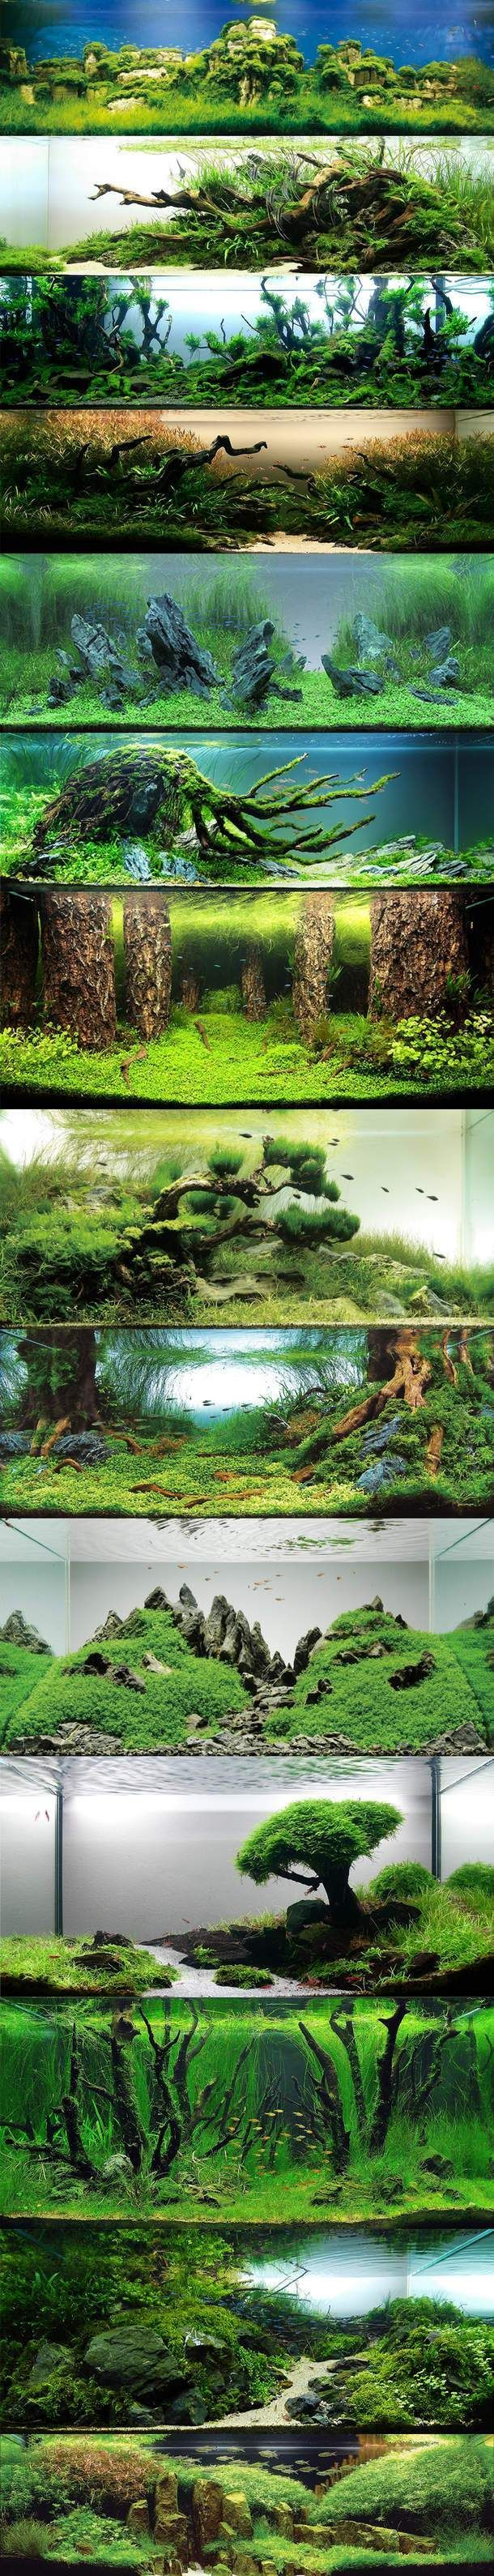 The Magical World of Aquascaping Living Terrariums WITH PICTURES